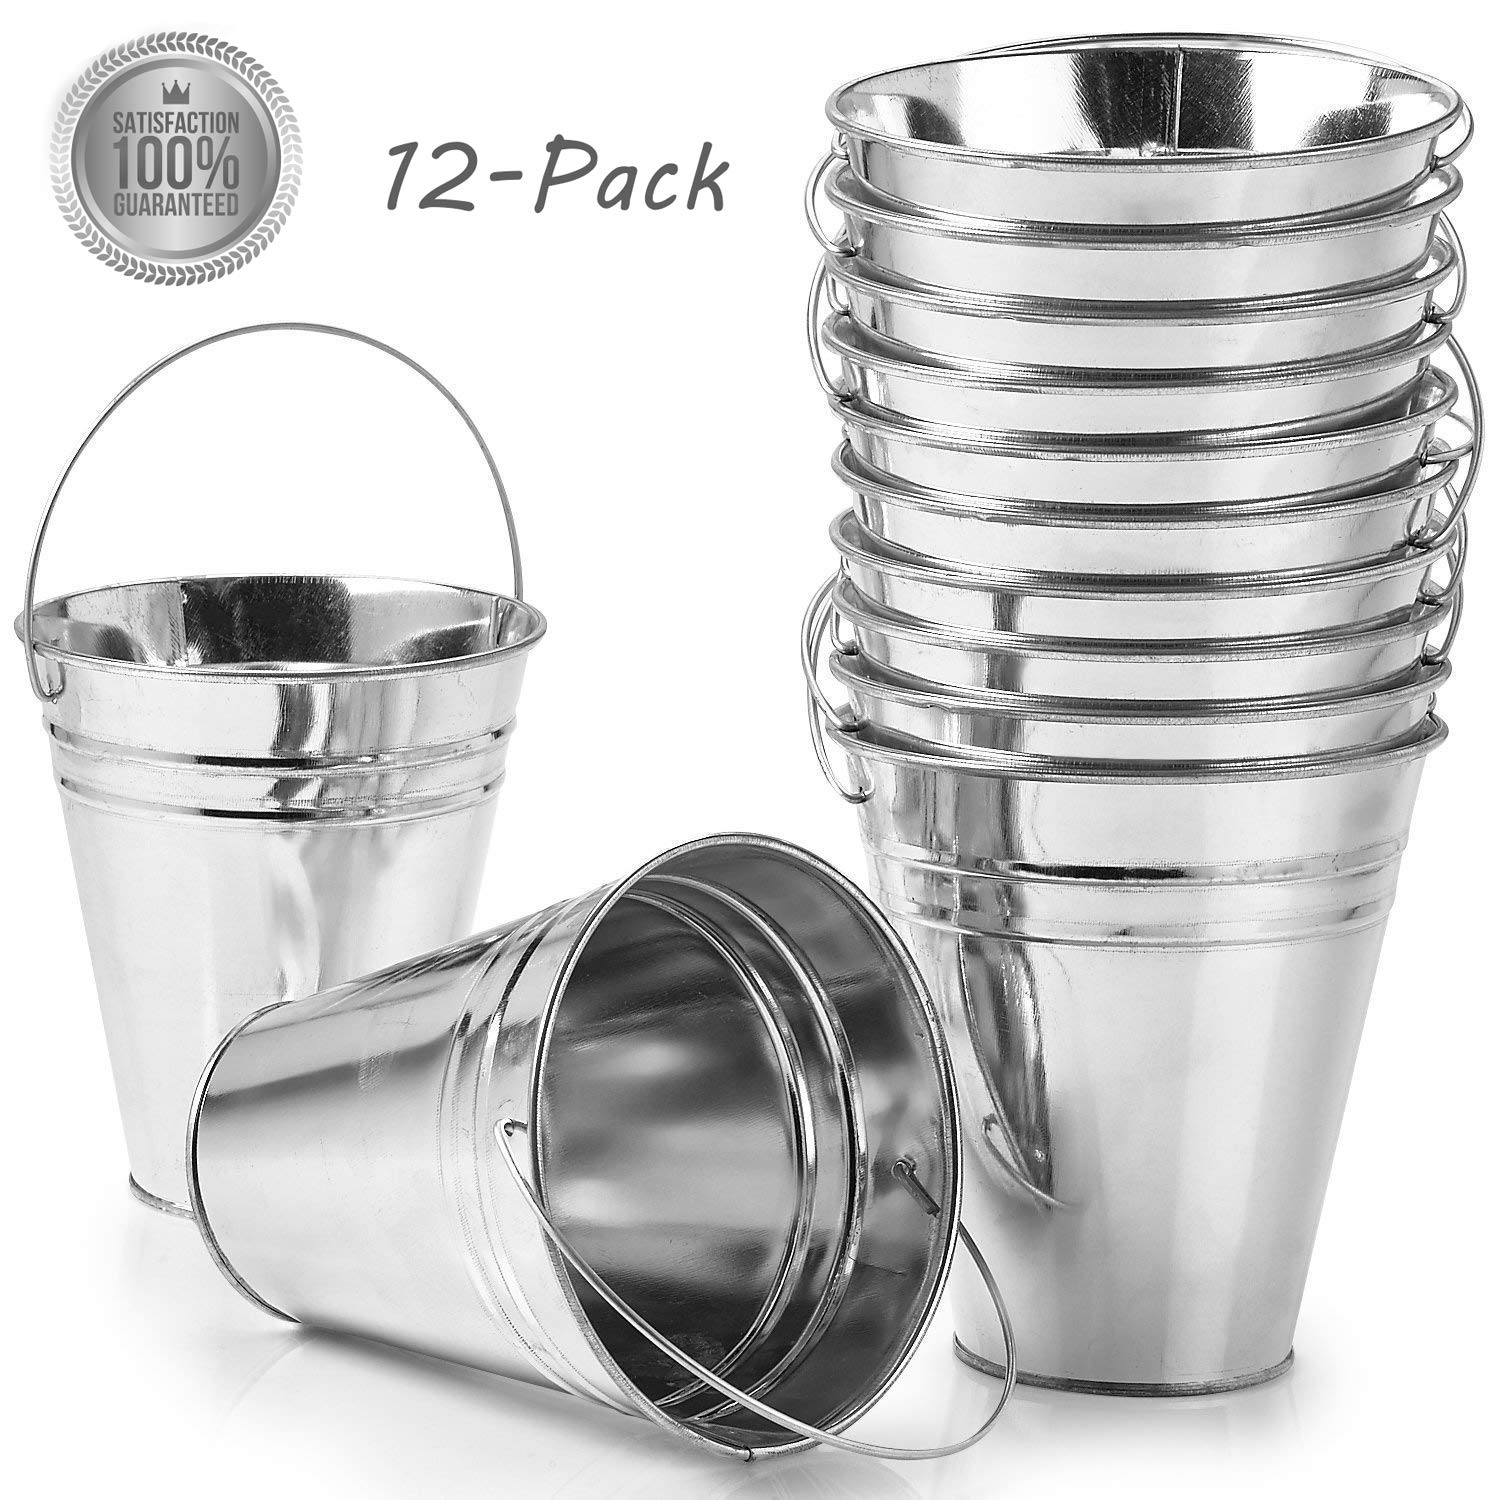 "Kidsco 12-Pack Large Galvanized Metal Buckets with Handle 5"" X 4 1/2"" - Unique Goody Baskets, Great for Party Favors, Party Accessories and Decoration"